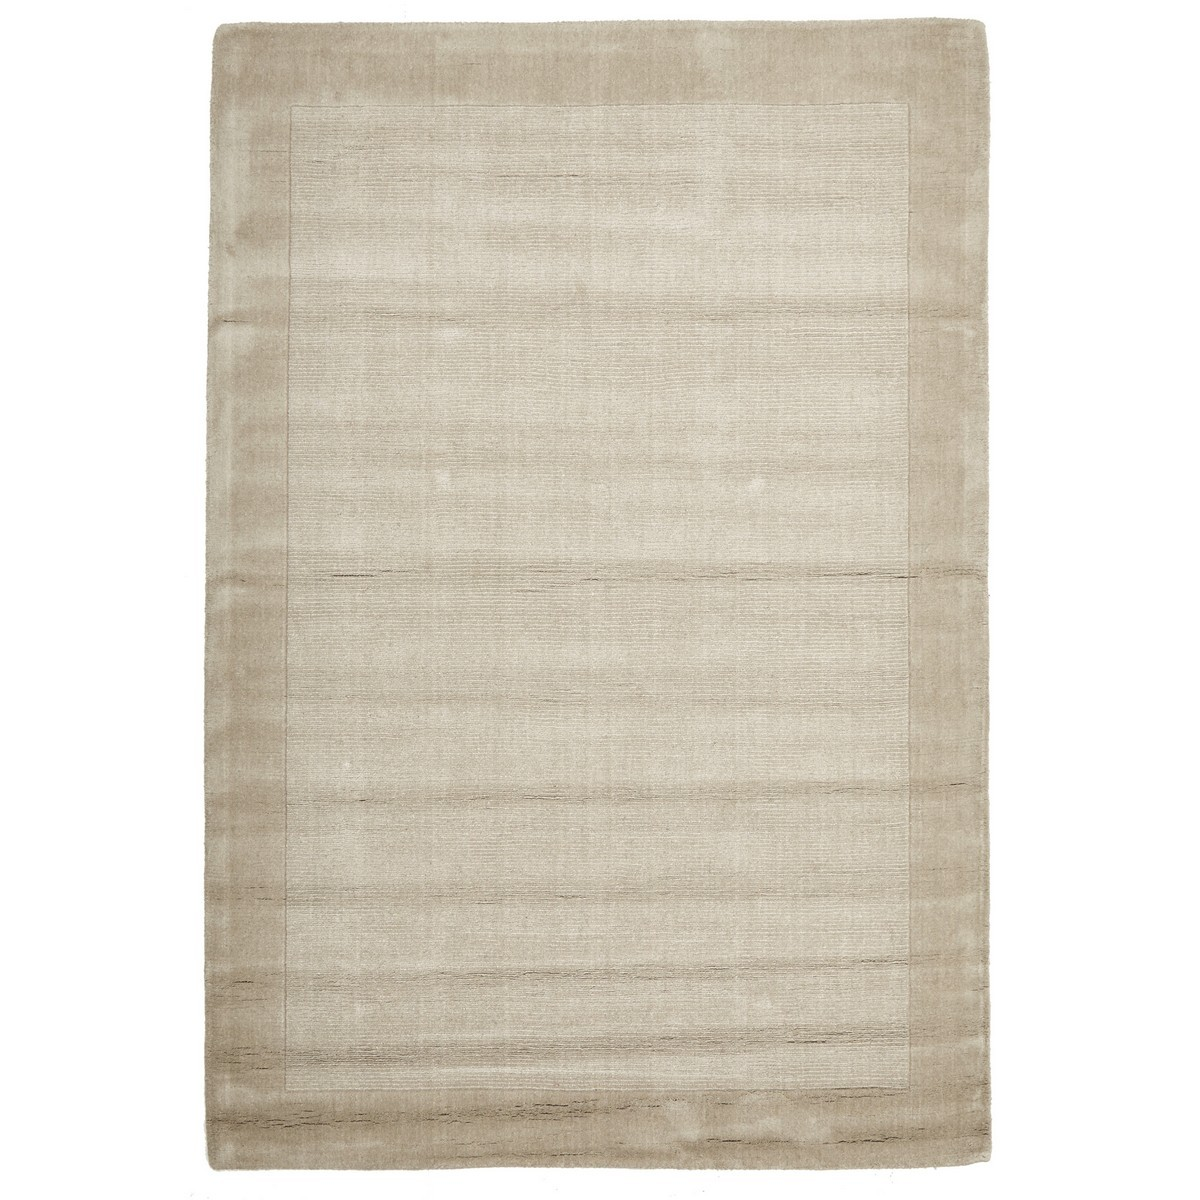 Luxe Hand Tufted Wool Rug, 320x230cm, Bone